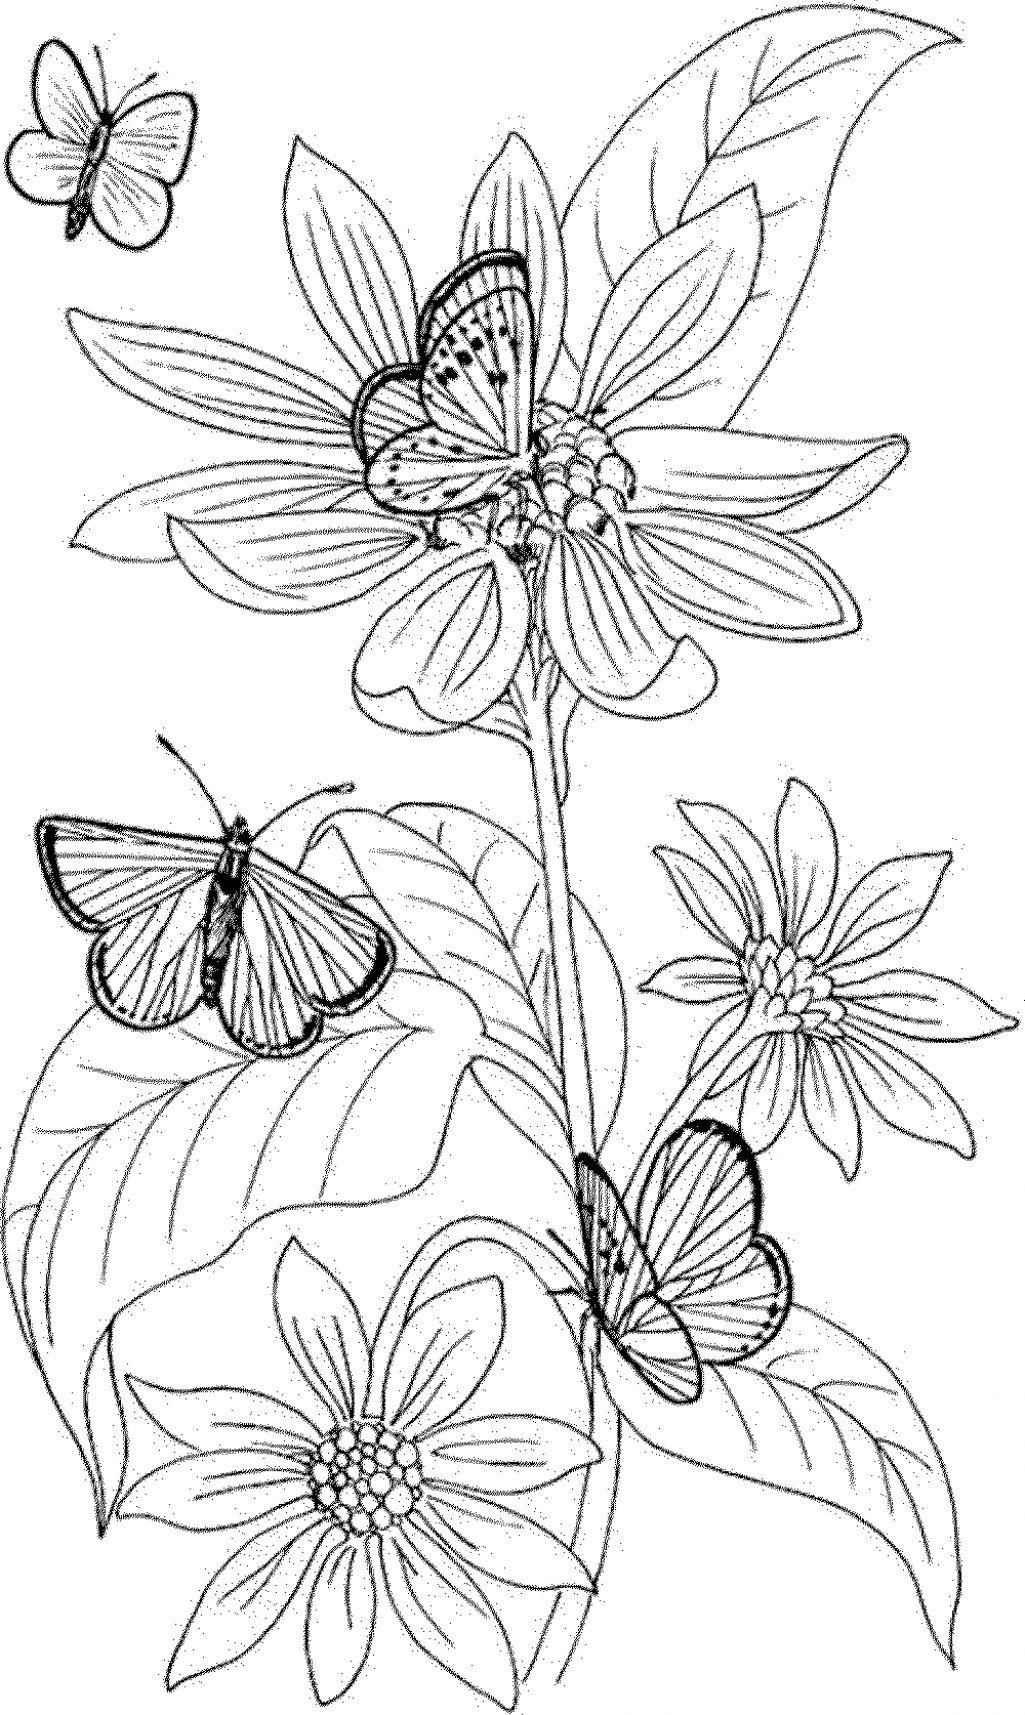 coloring pages for adults to print flowers flower coloring pages for adults print coloring pages adults flowers for to